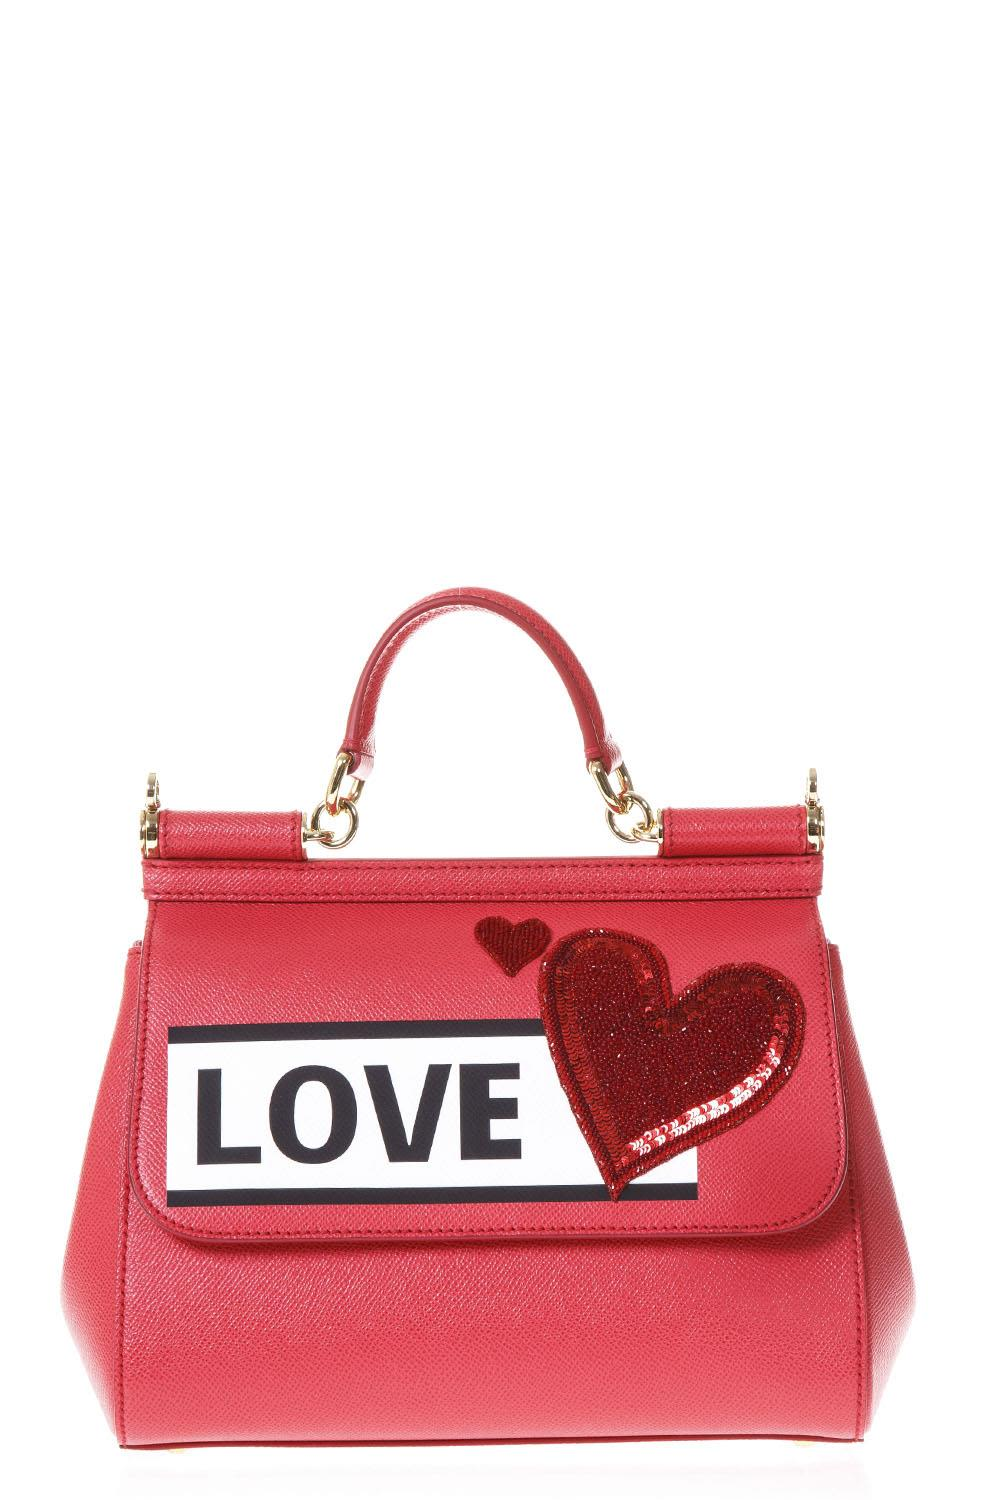 Dolce & Gabbana Sicily Ibiscus Leather Bag With Love Patch